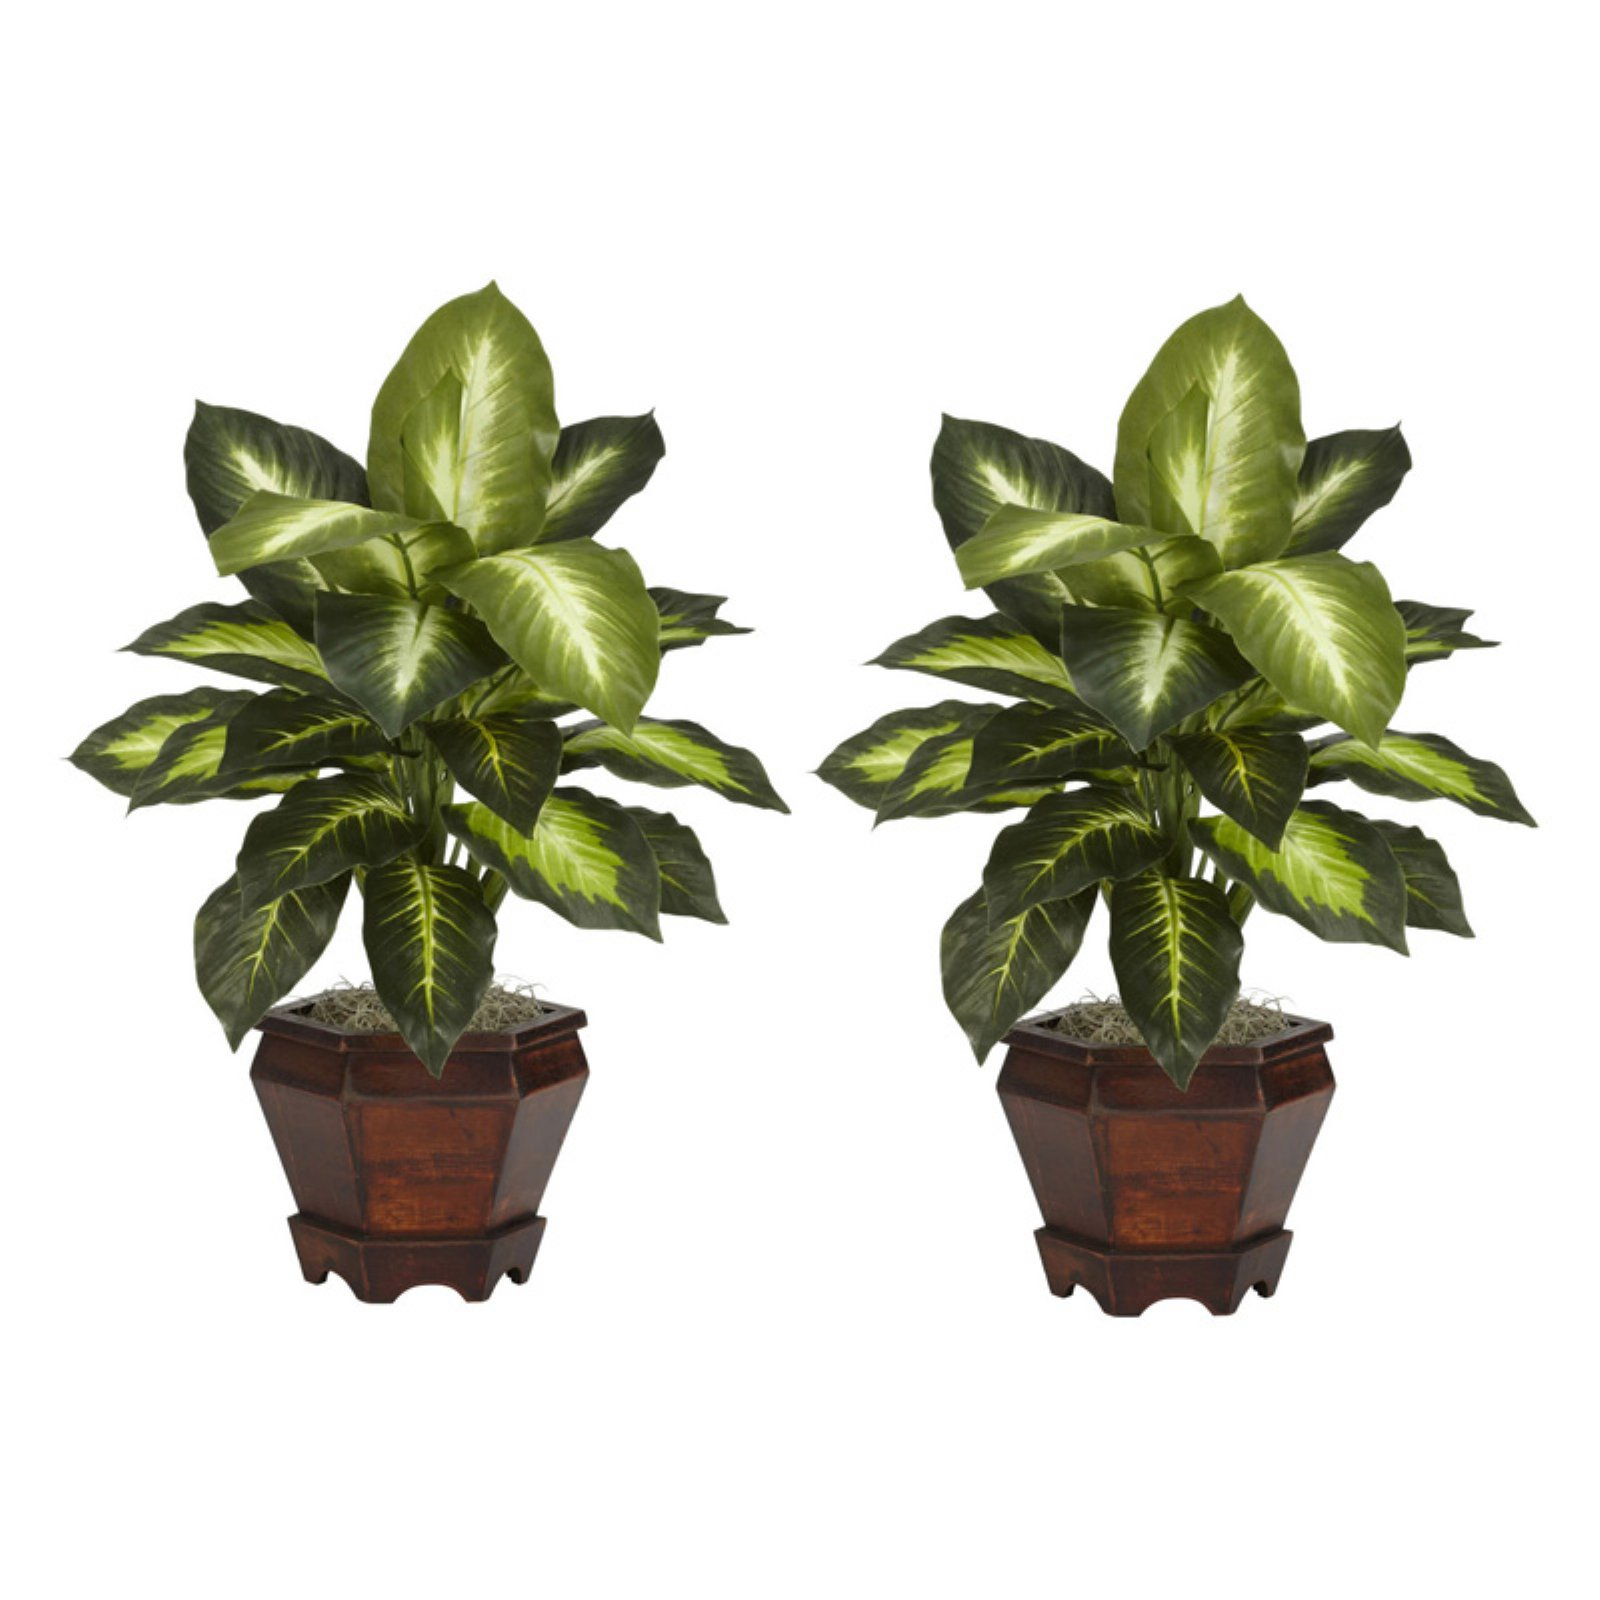 Dieffenbachia Silk Plant with Wood Vase, Golden, 2pc